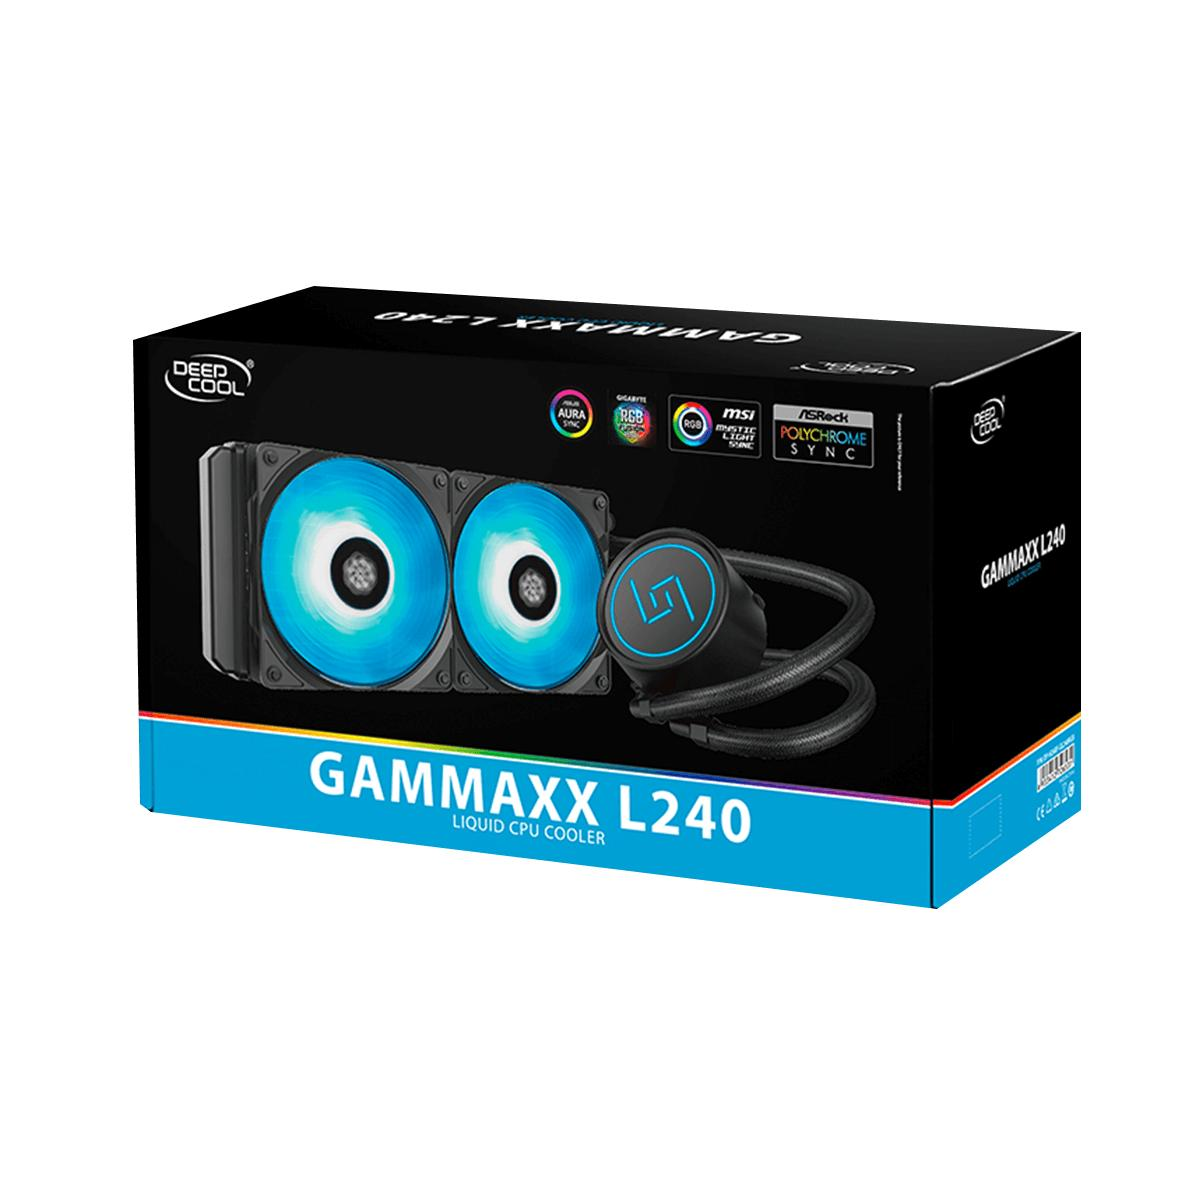 Deepcool Gammaxx L240 RGB AIO Liquid Cooler, Deep Cool Water Cooling with  240 Aluminum Radiator and 2x 120mm RGB Deepcool Fan, RGB sycnc to Asus  AURA,